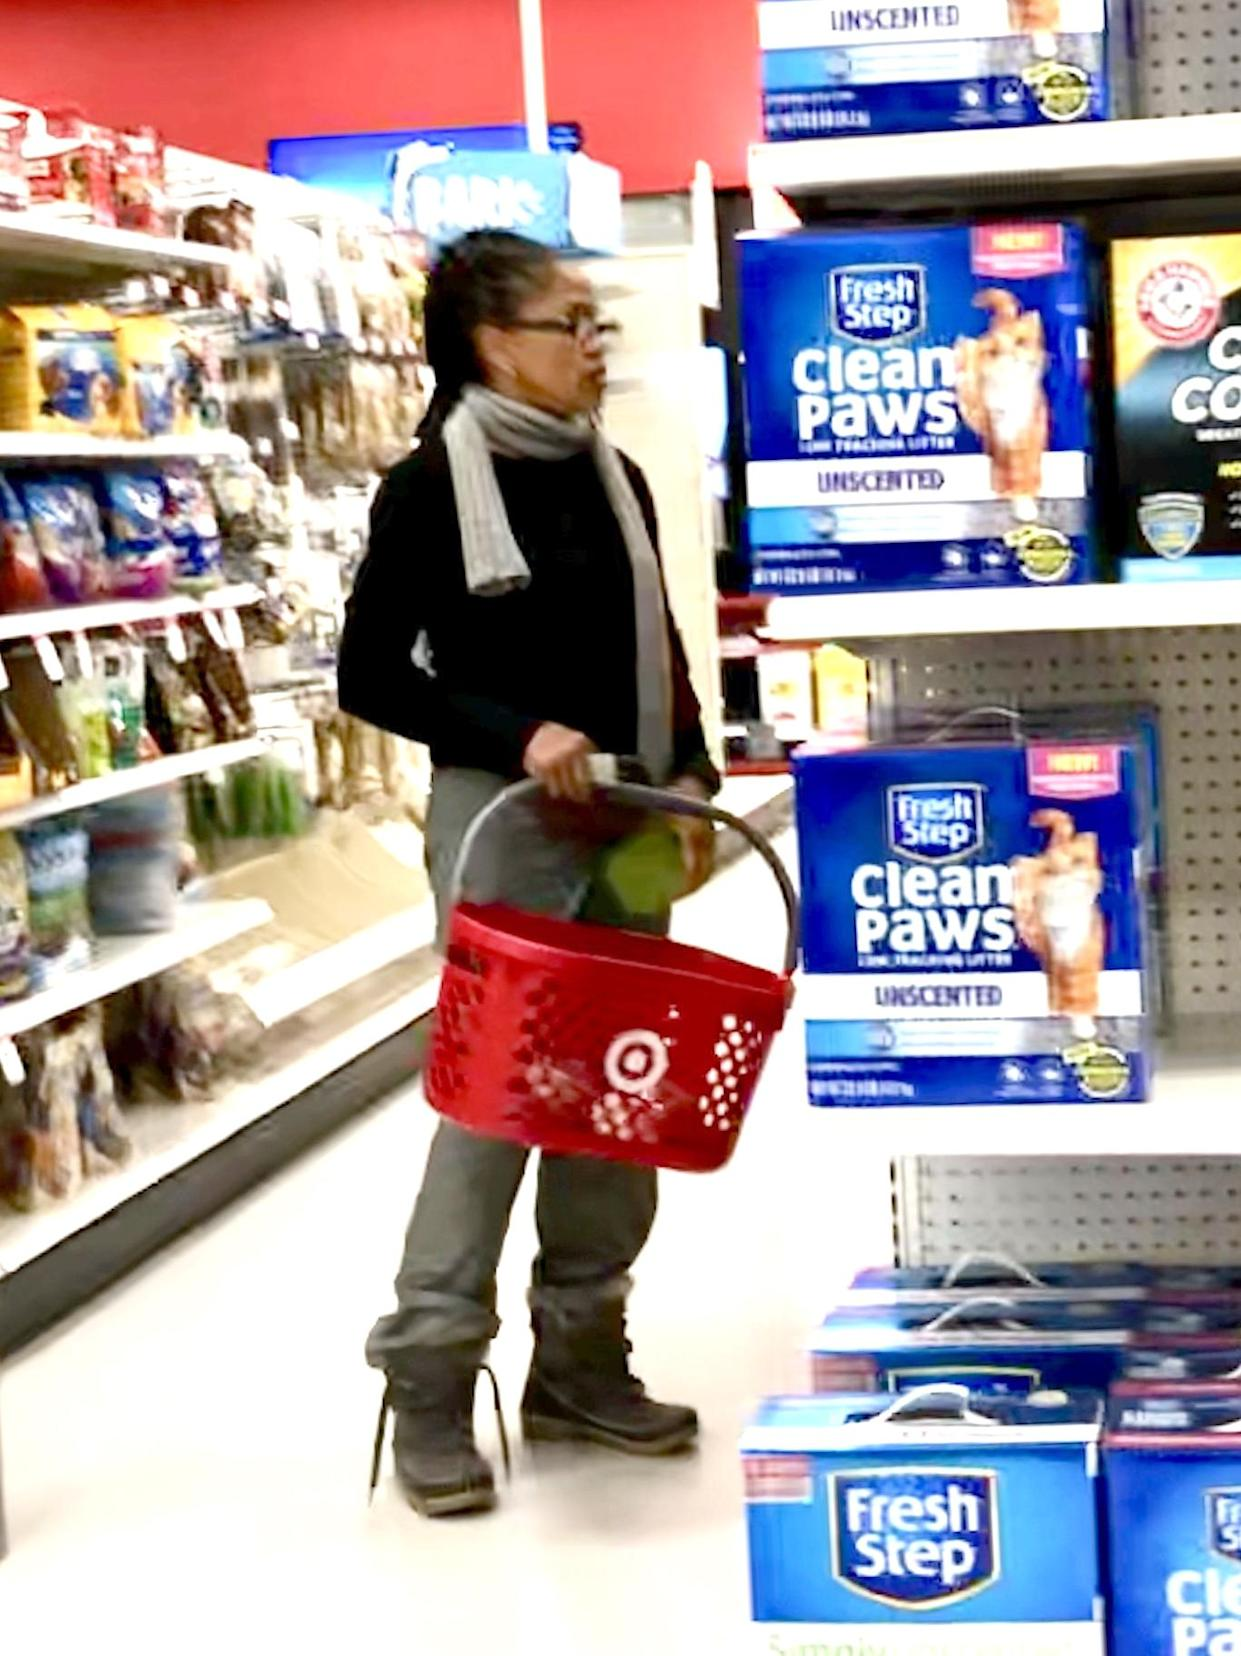 Doria quietly browsed the aisles [Photo: SWNS]